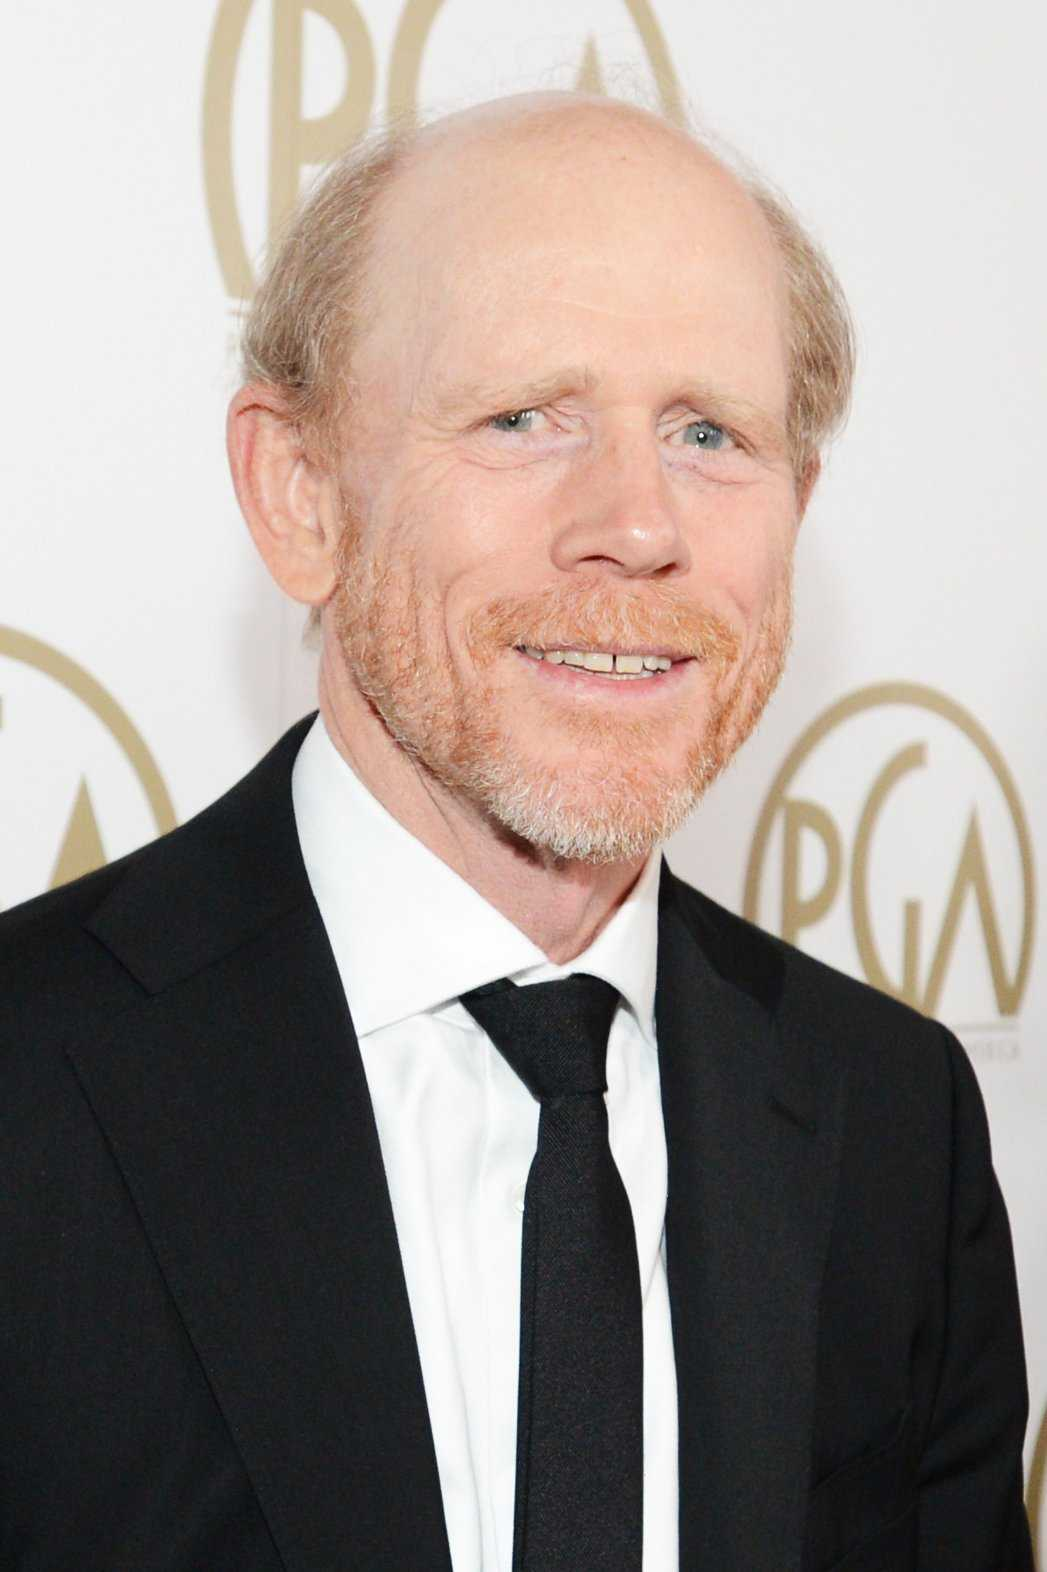 Ron Howard May Direct The Jungle Book Adaptation